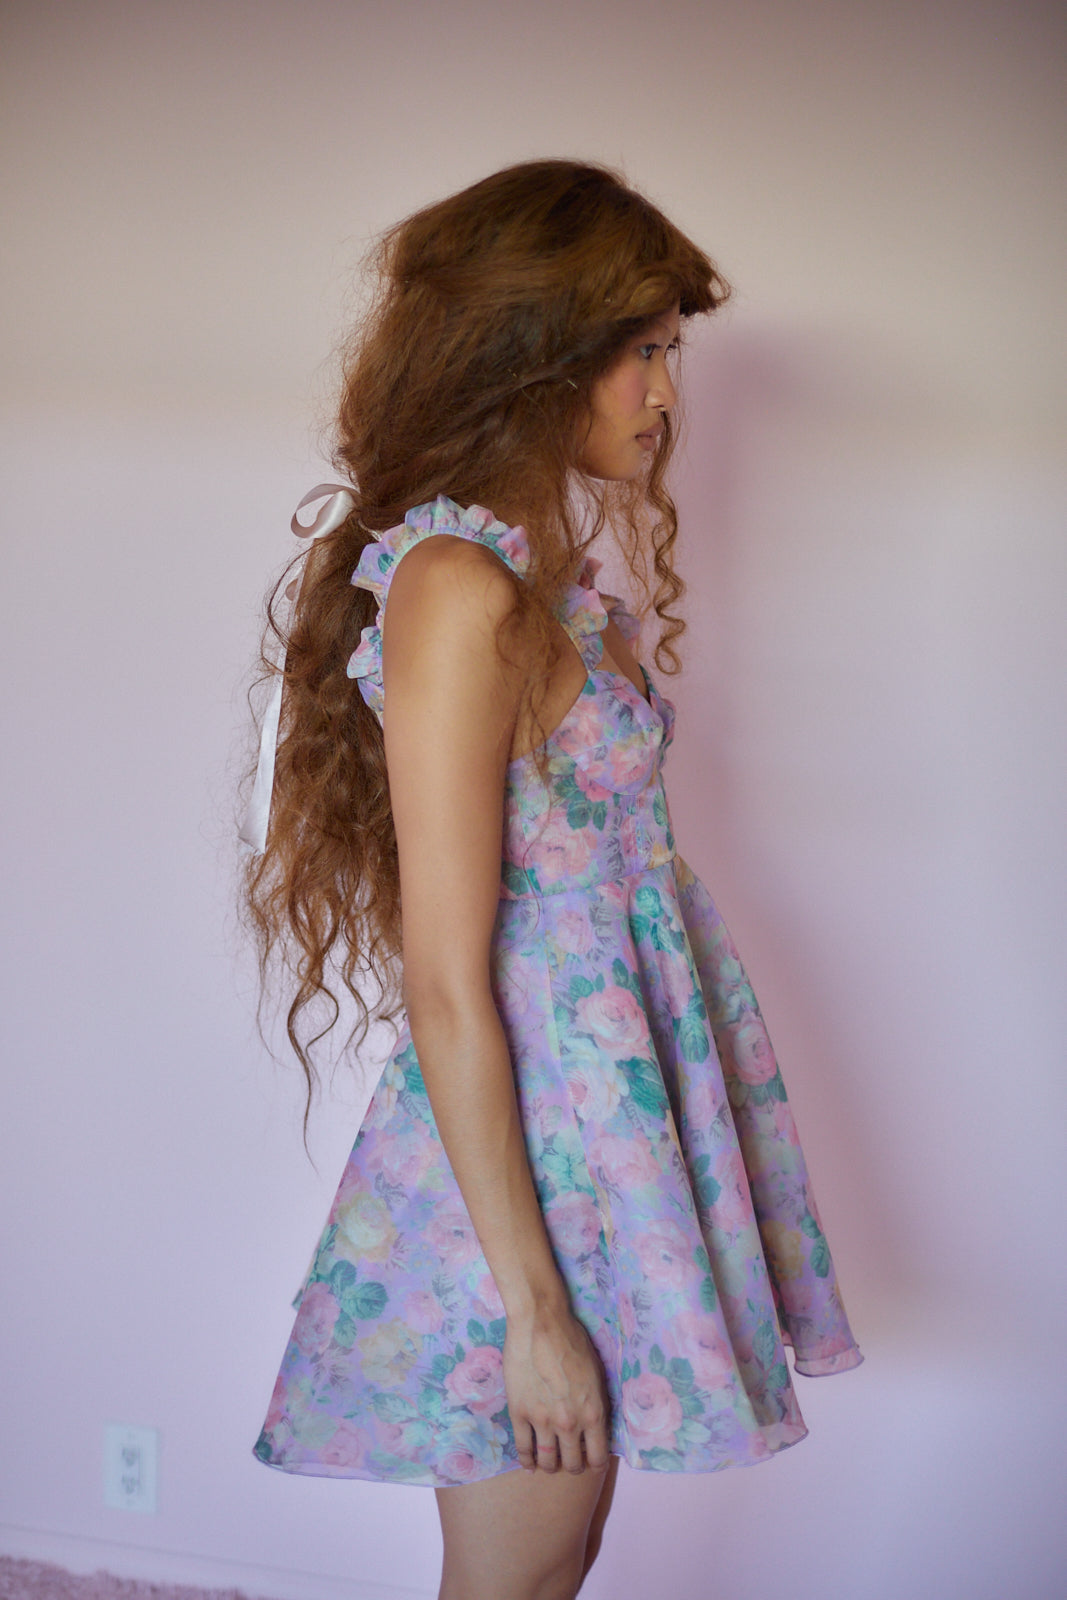 The Cabbage Rose Sunny Dress